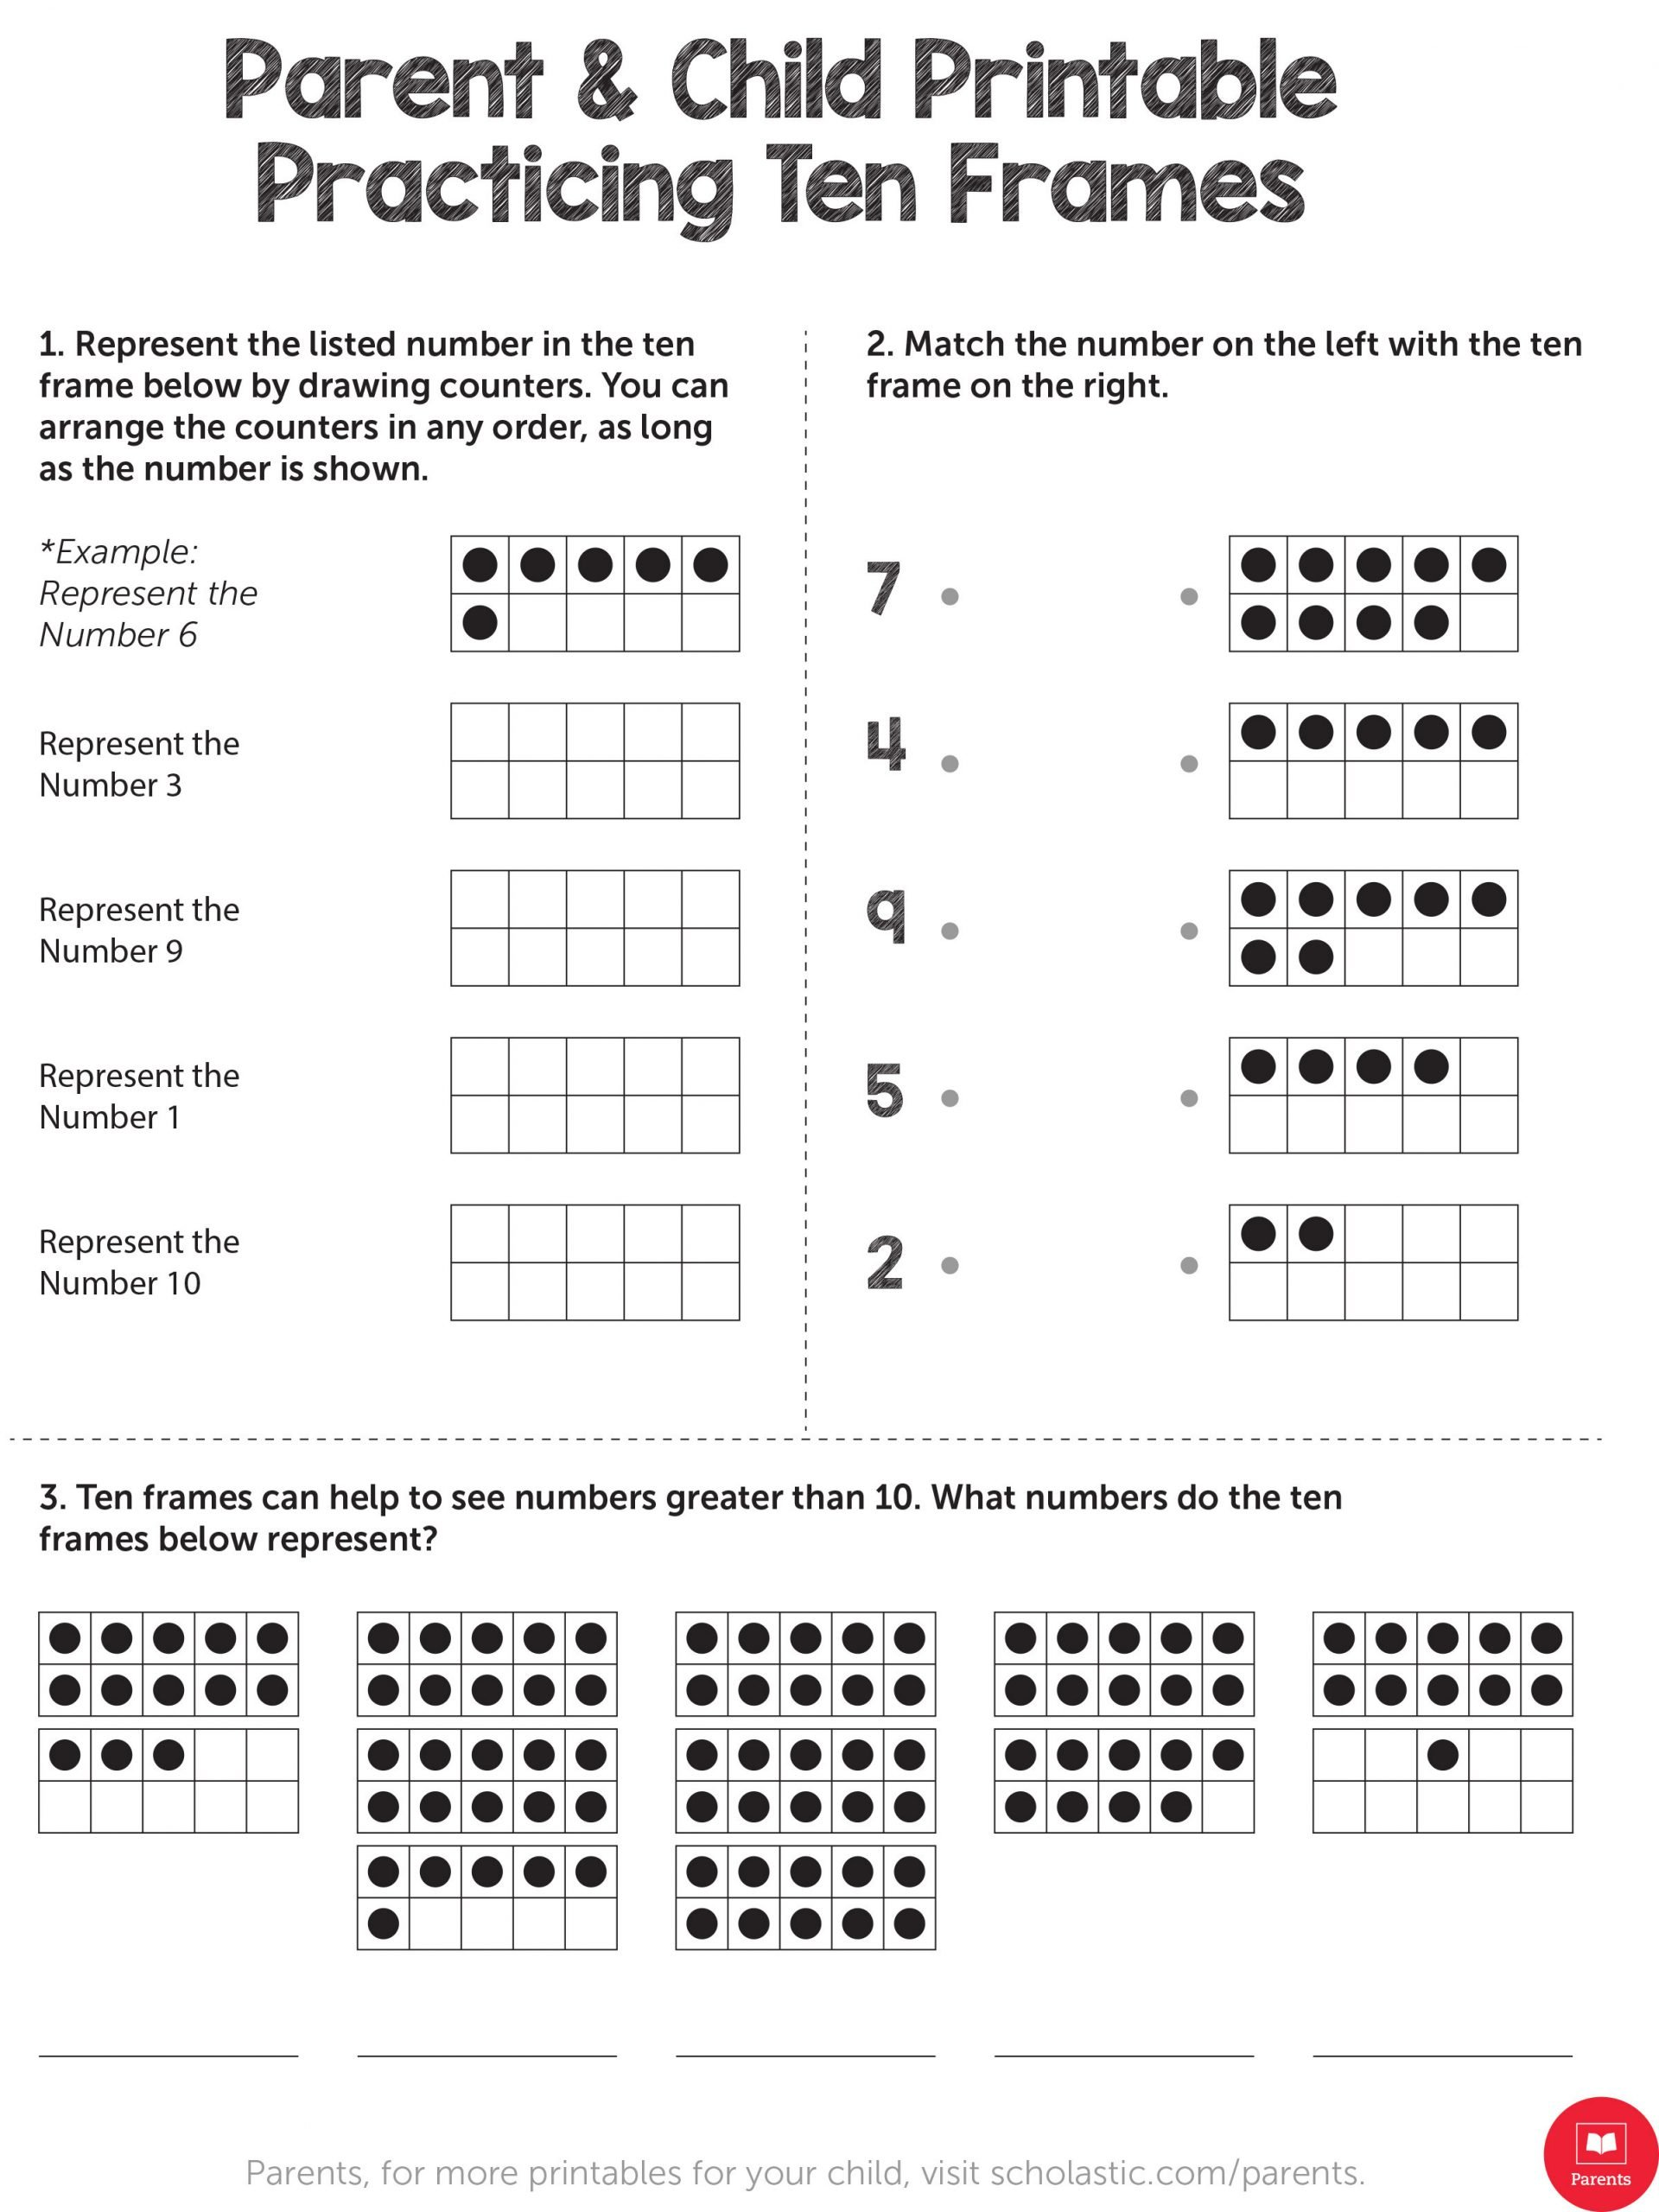 Blank Ten Frame Worksheets Learn Your Child S Math with This Ten Frame Printable